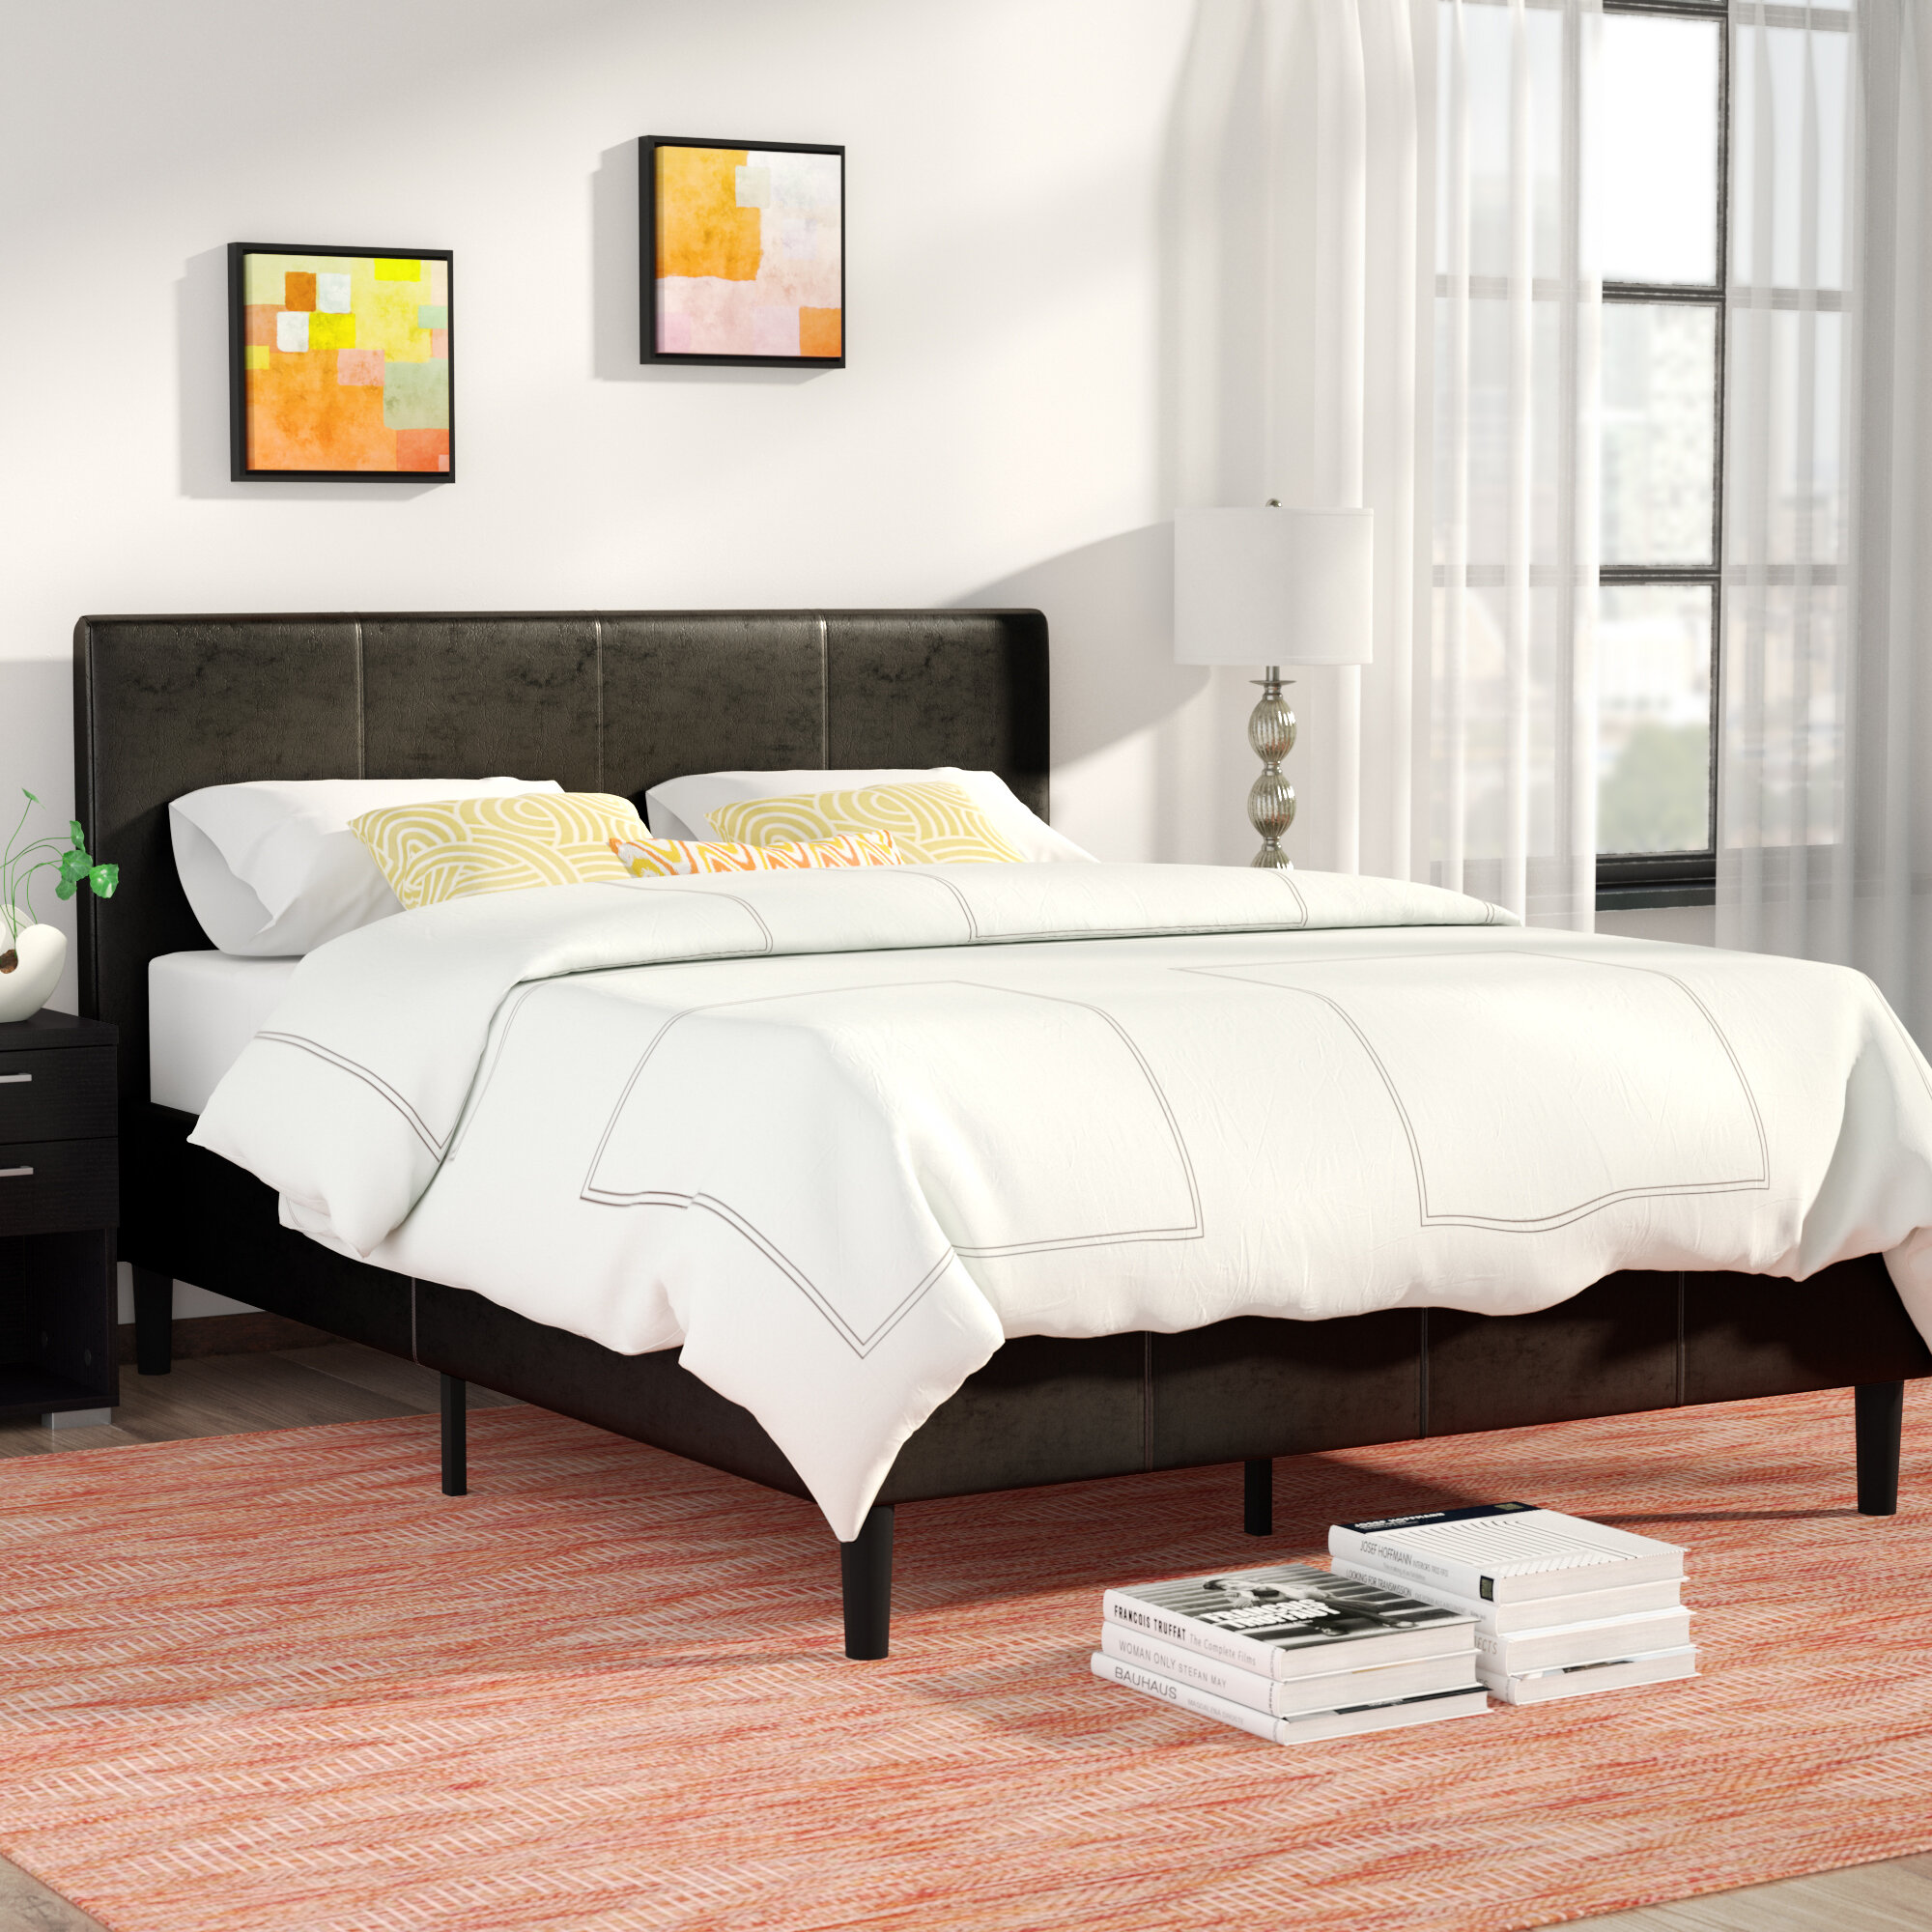 Zipcode Design Clyde Upholstered Platform Bed & Reviews | Wayfair